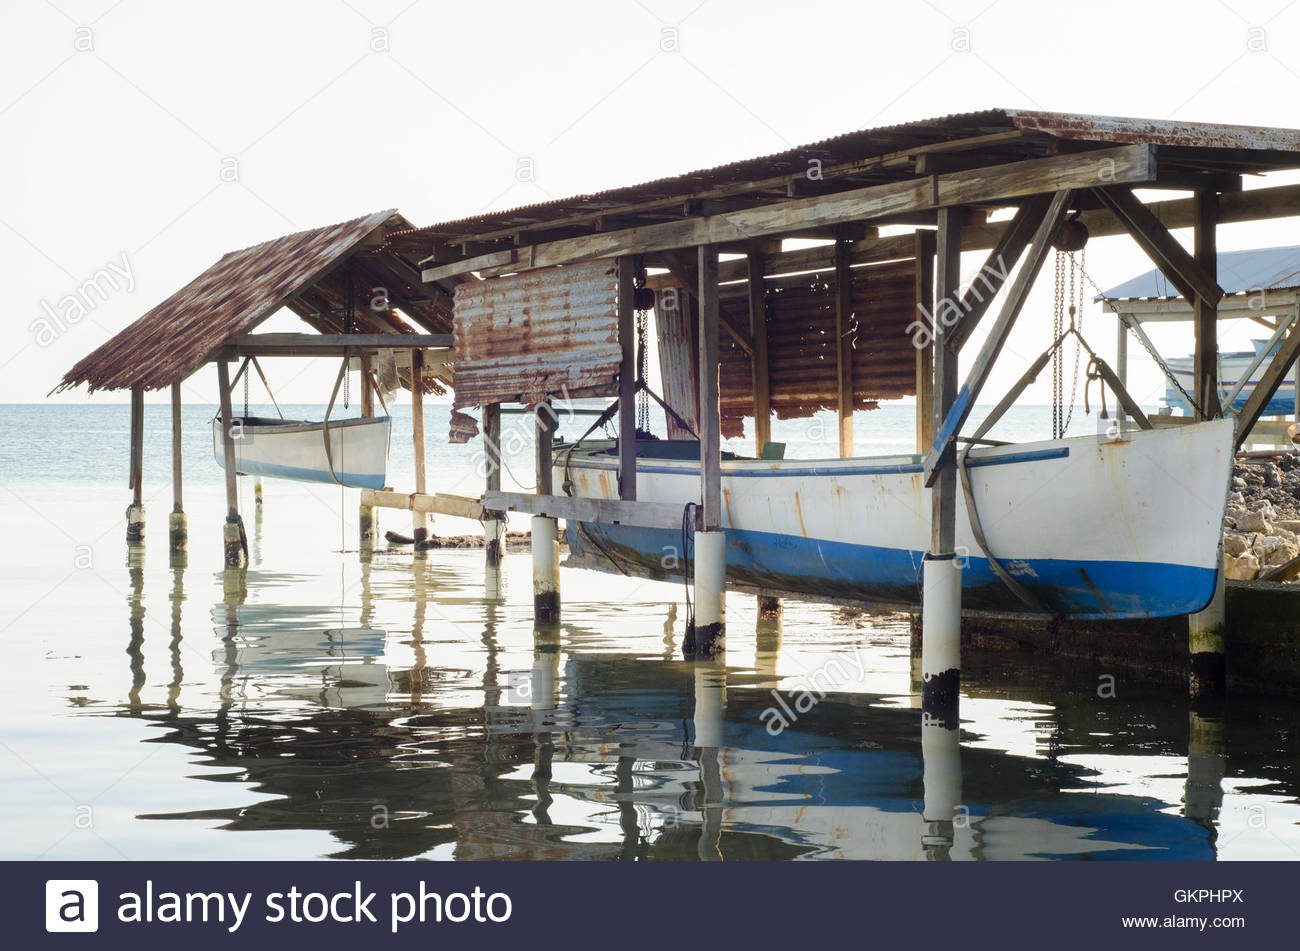 Huts for storing sailboats on ocean shore, central america Stock Photo